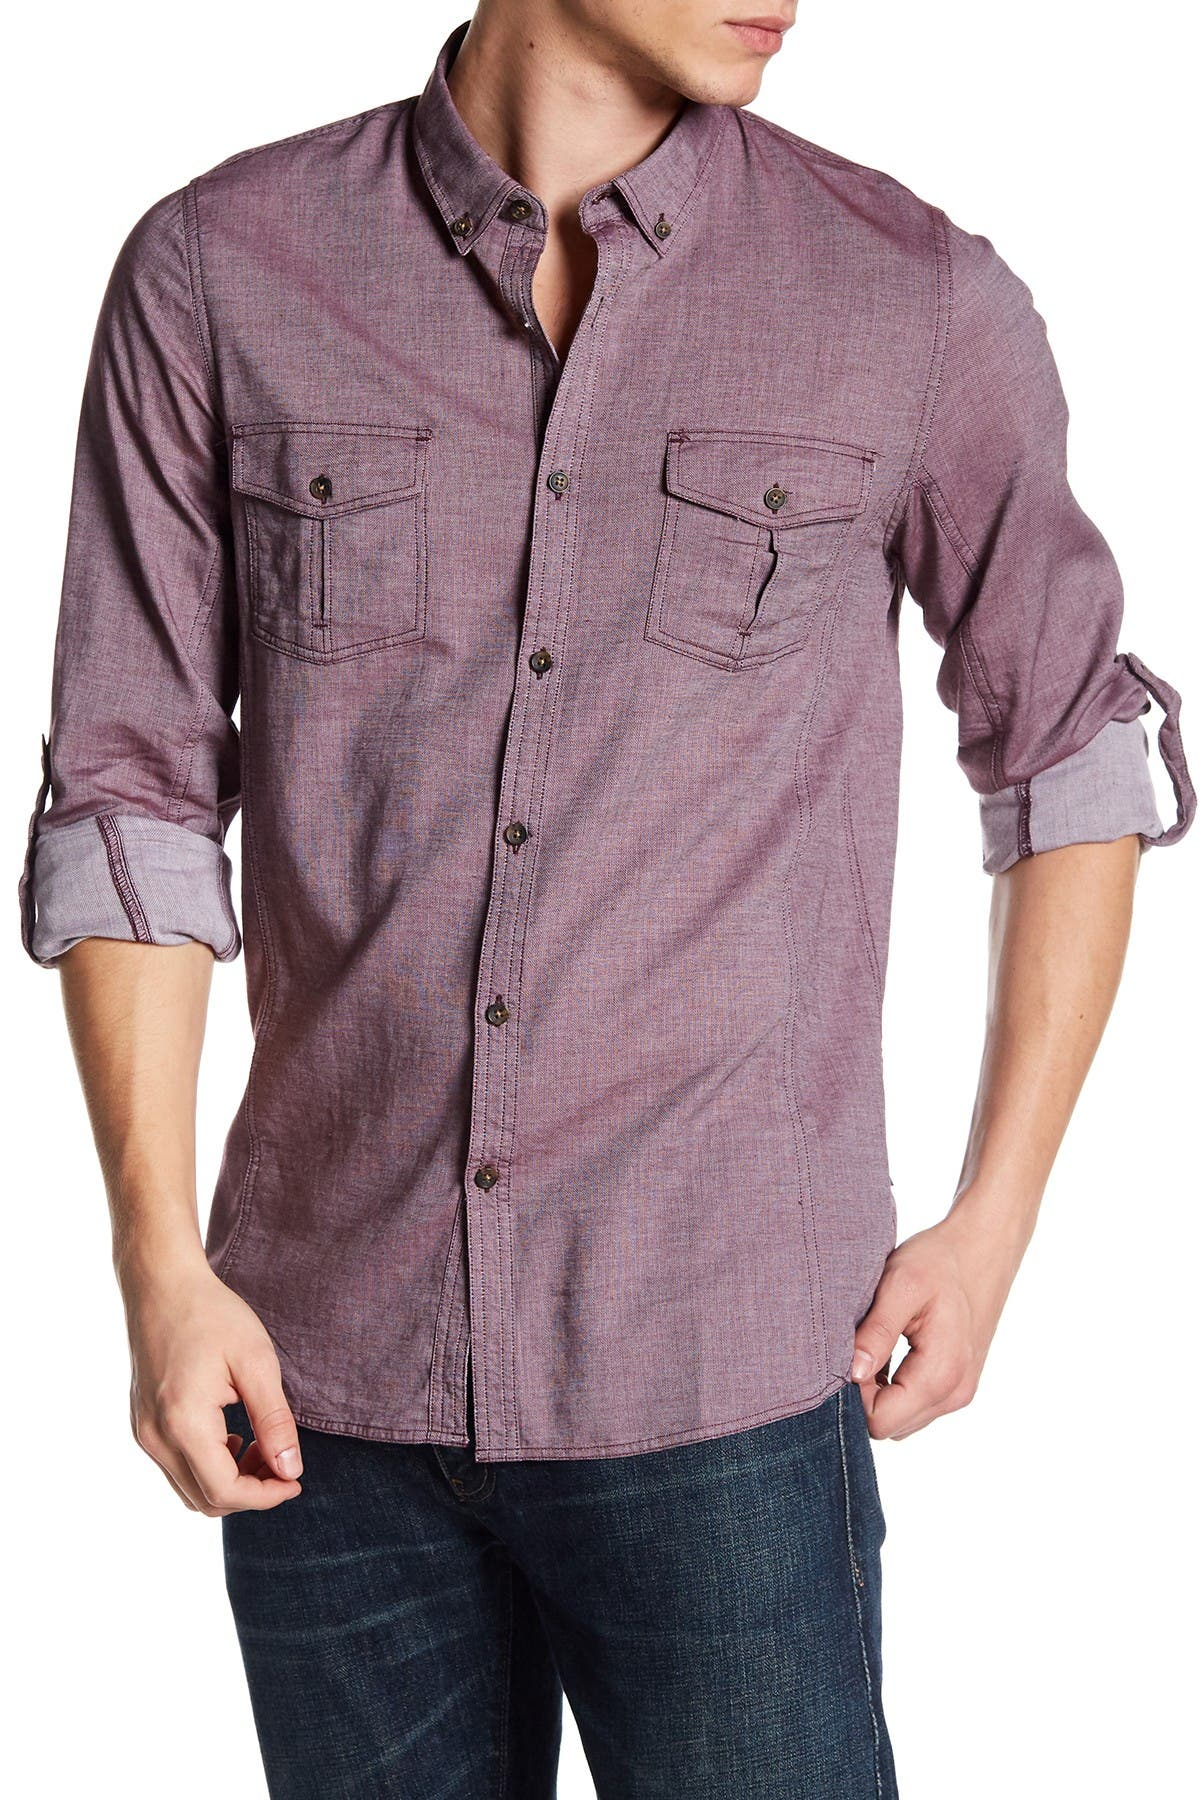 Image of Indigo Star Collared Long Sleeve Woven Tailored Fit Shirt